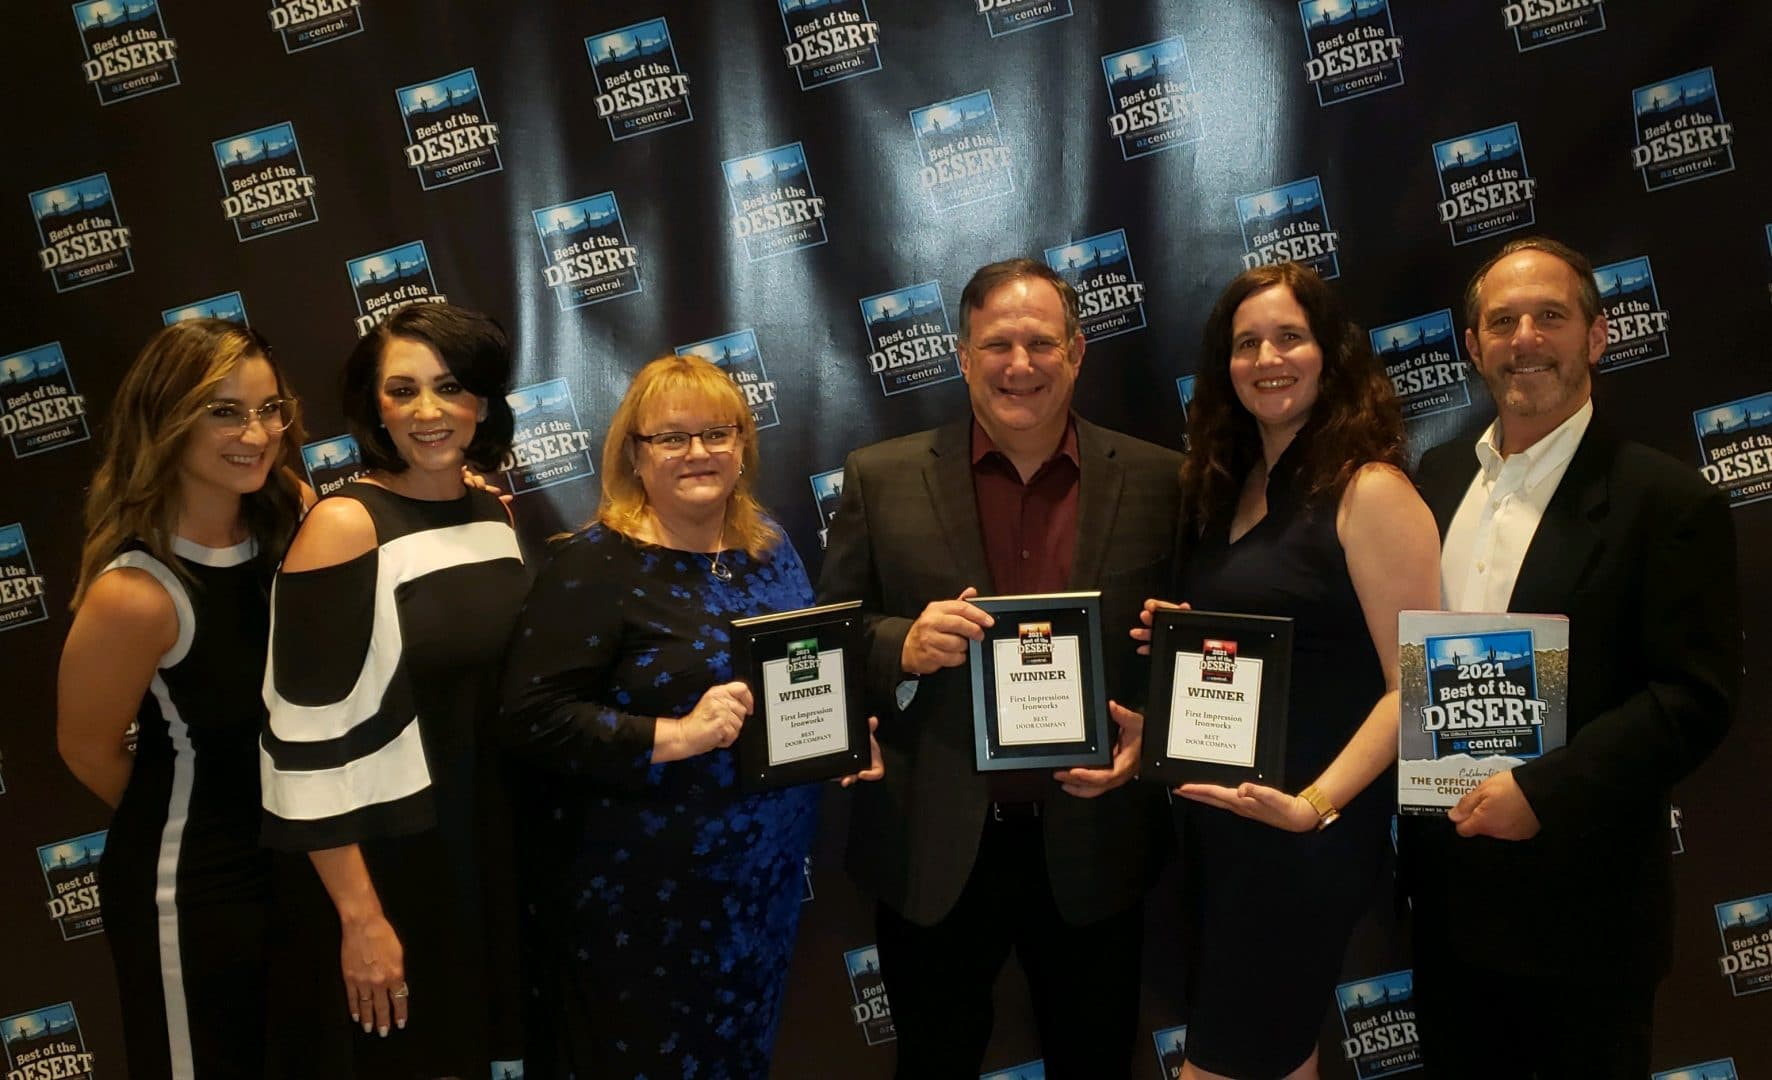 First Impression Ironworks team members holding all 3 of the Best of the Desert awards